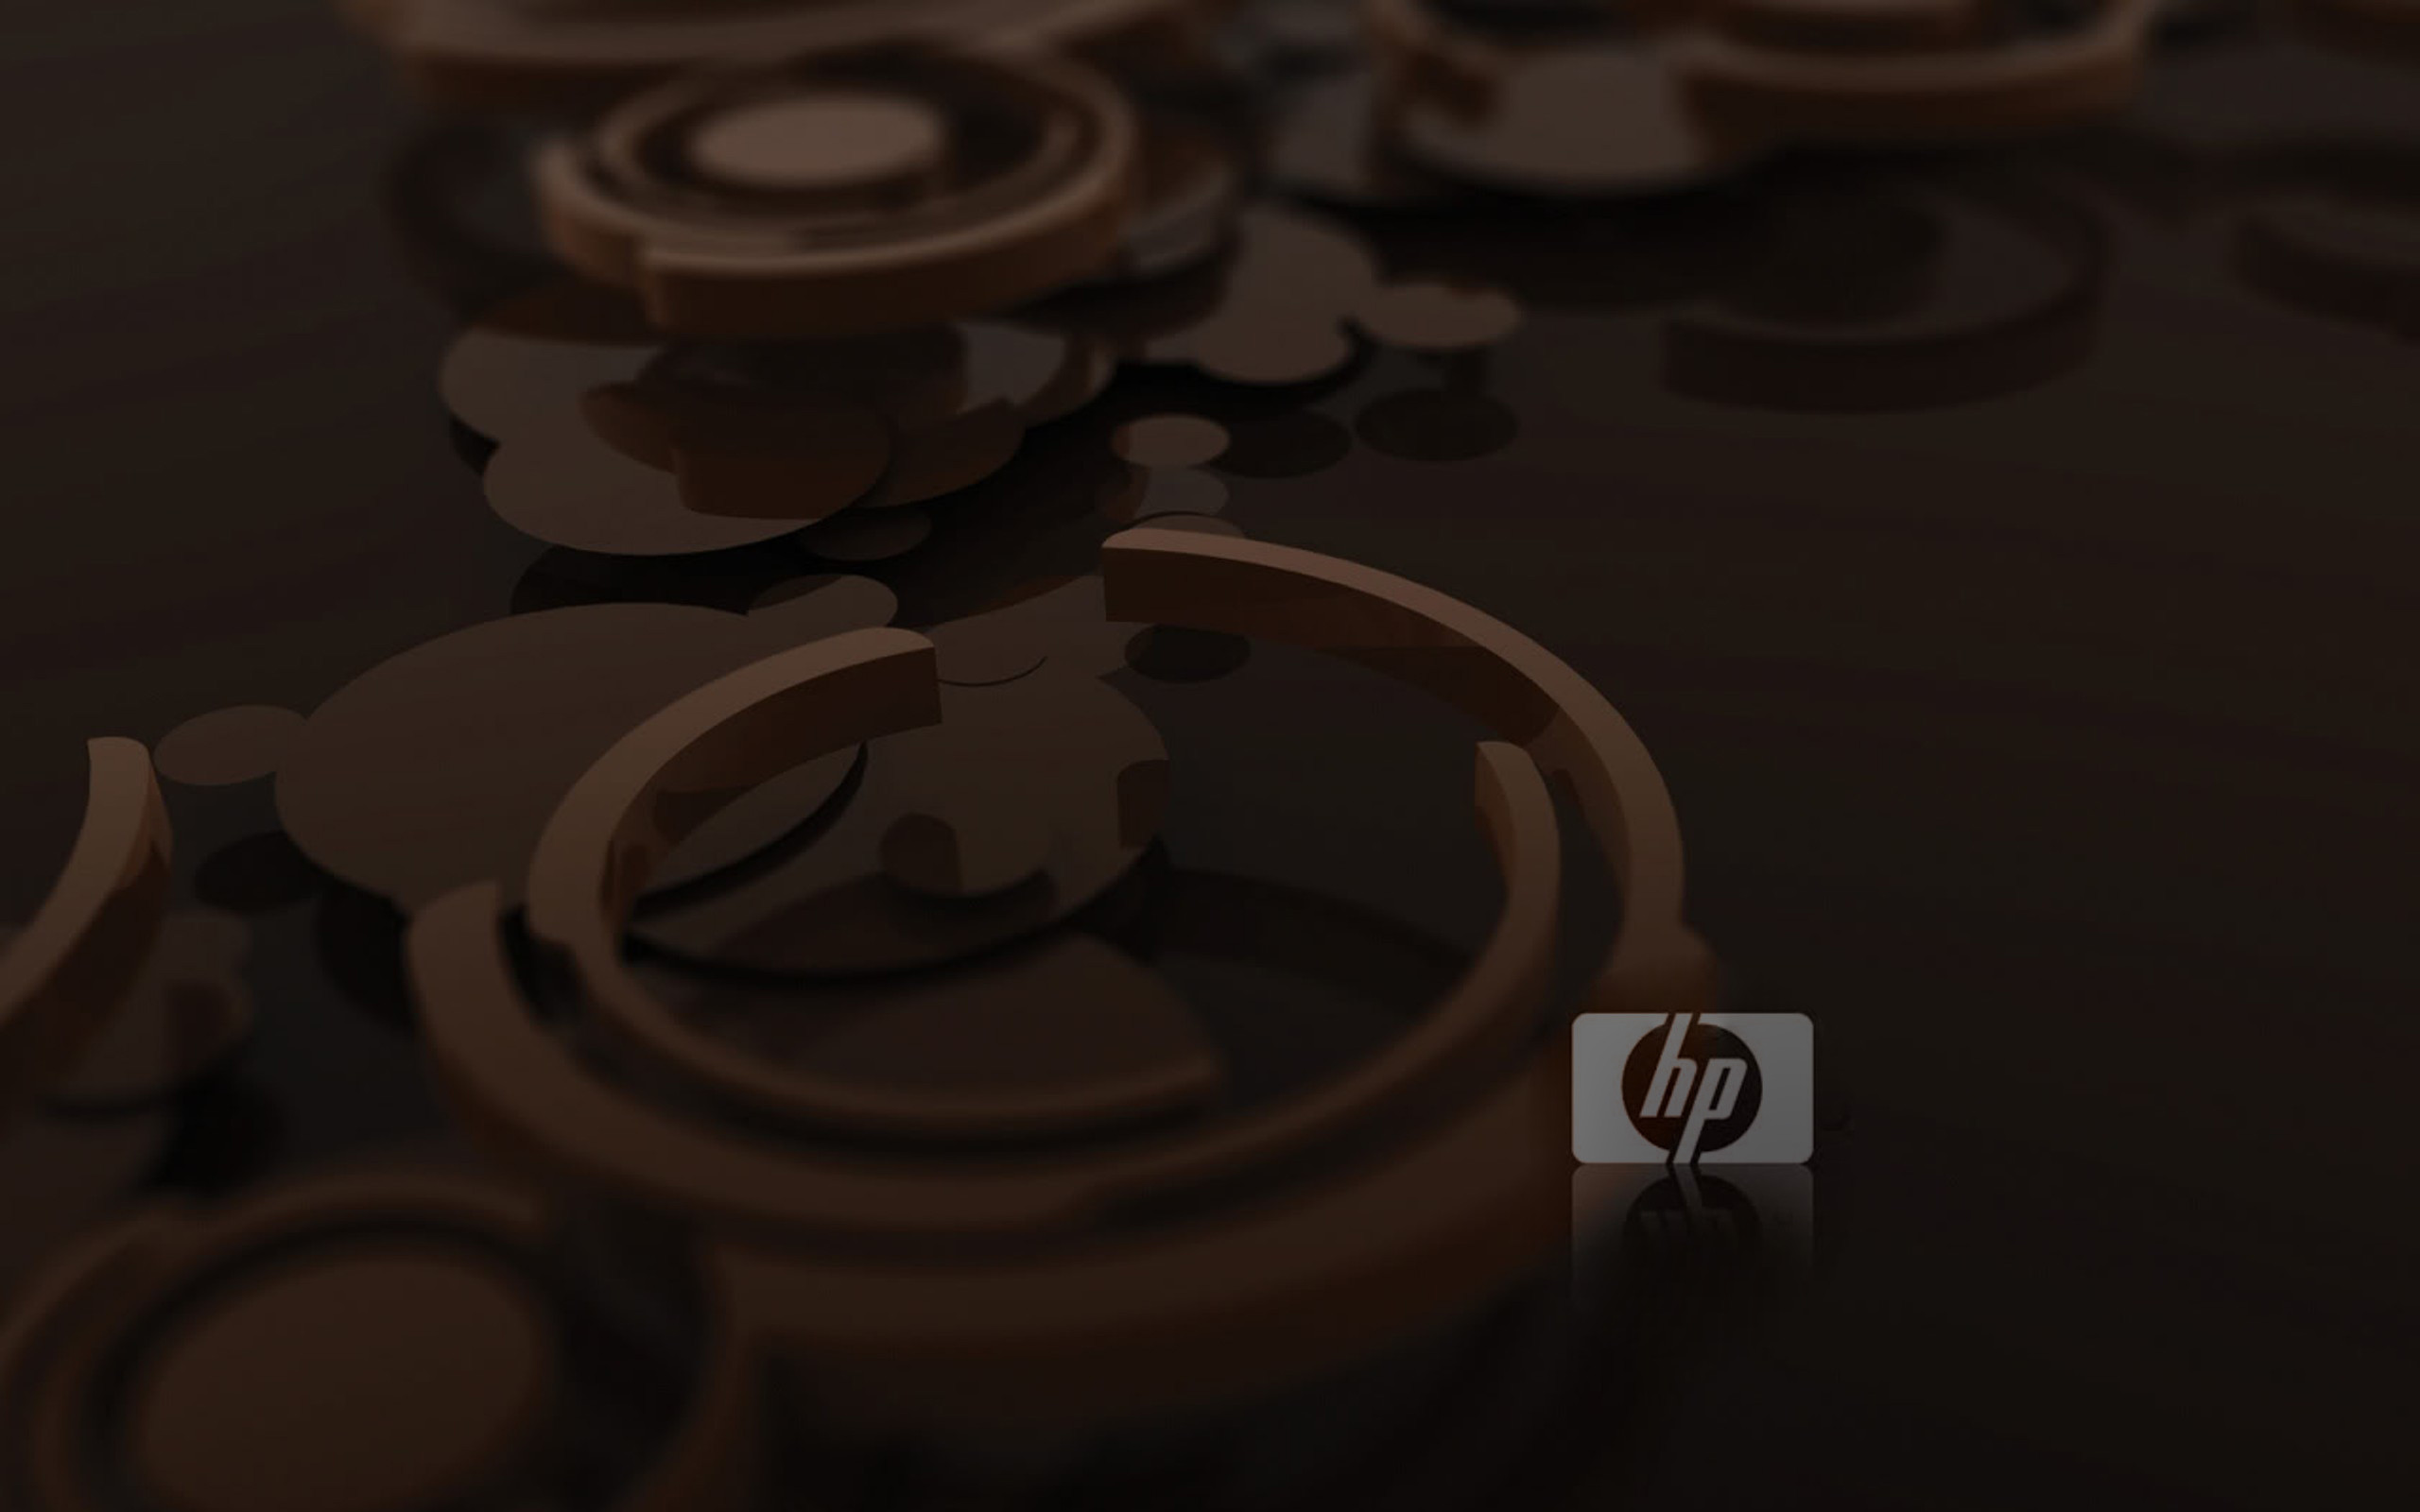 Res: 2560x1600, Bild: HPEspresso wallpapers and stock photos. Â«